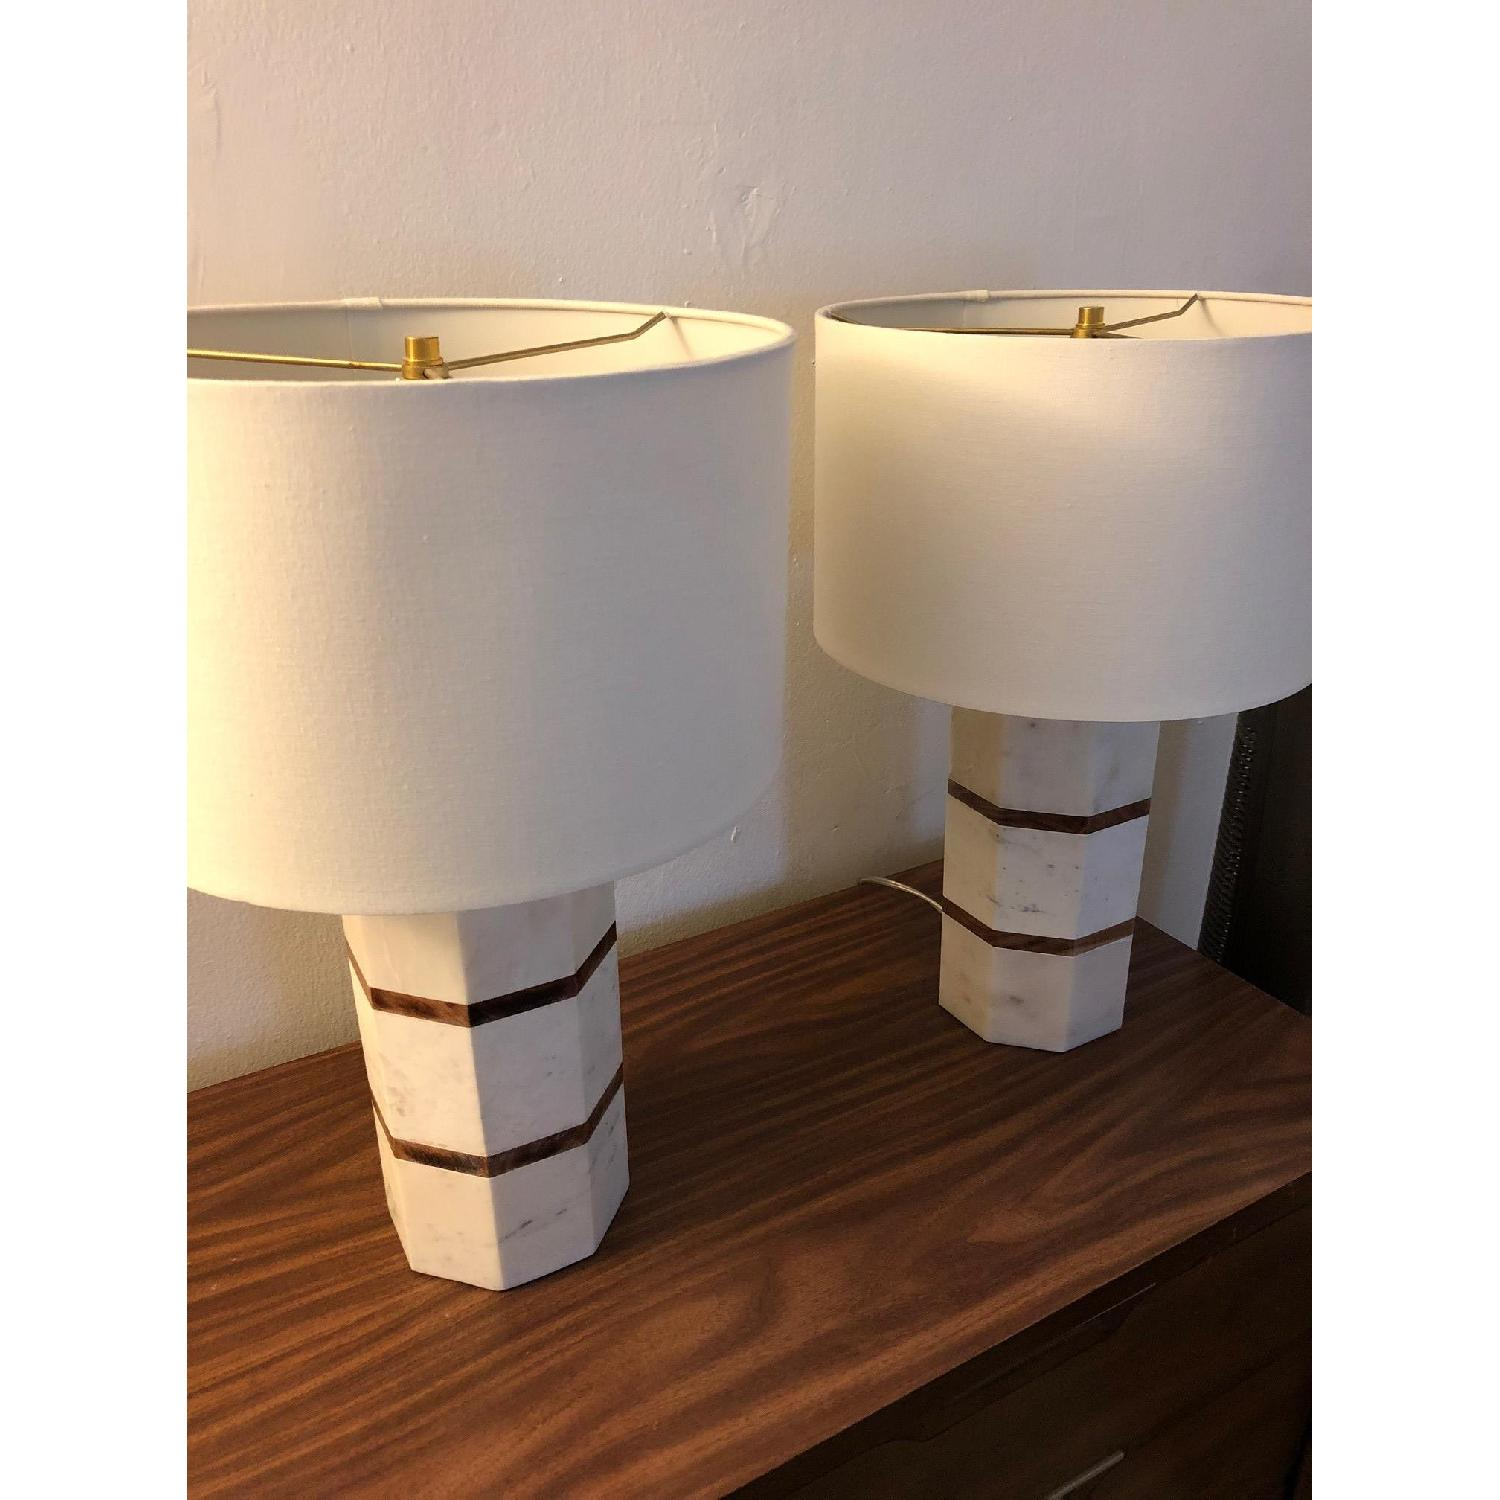 Pottery Barn Replacement Lamp Shades: Pottery Barn Johannes Lamp W/ Shade